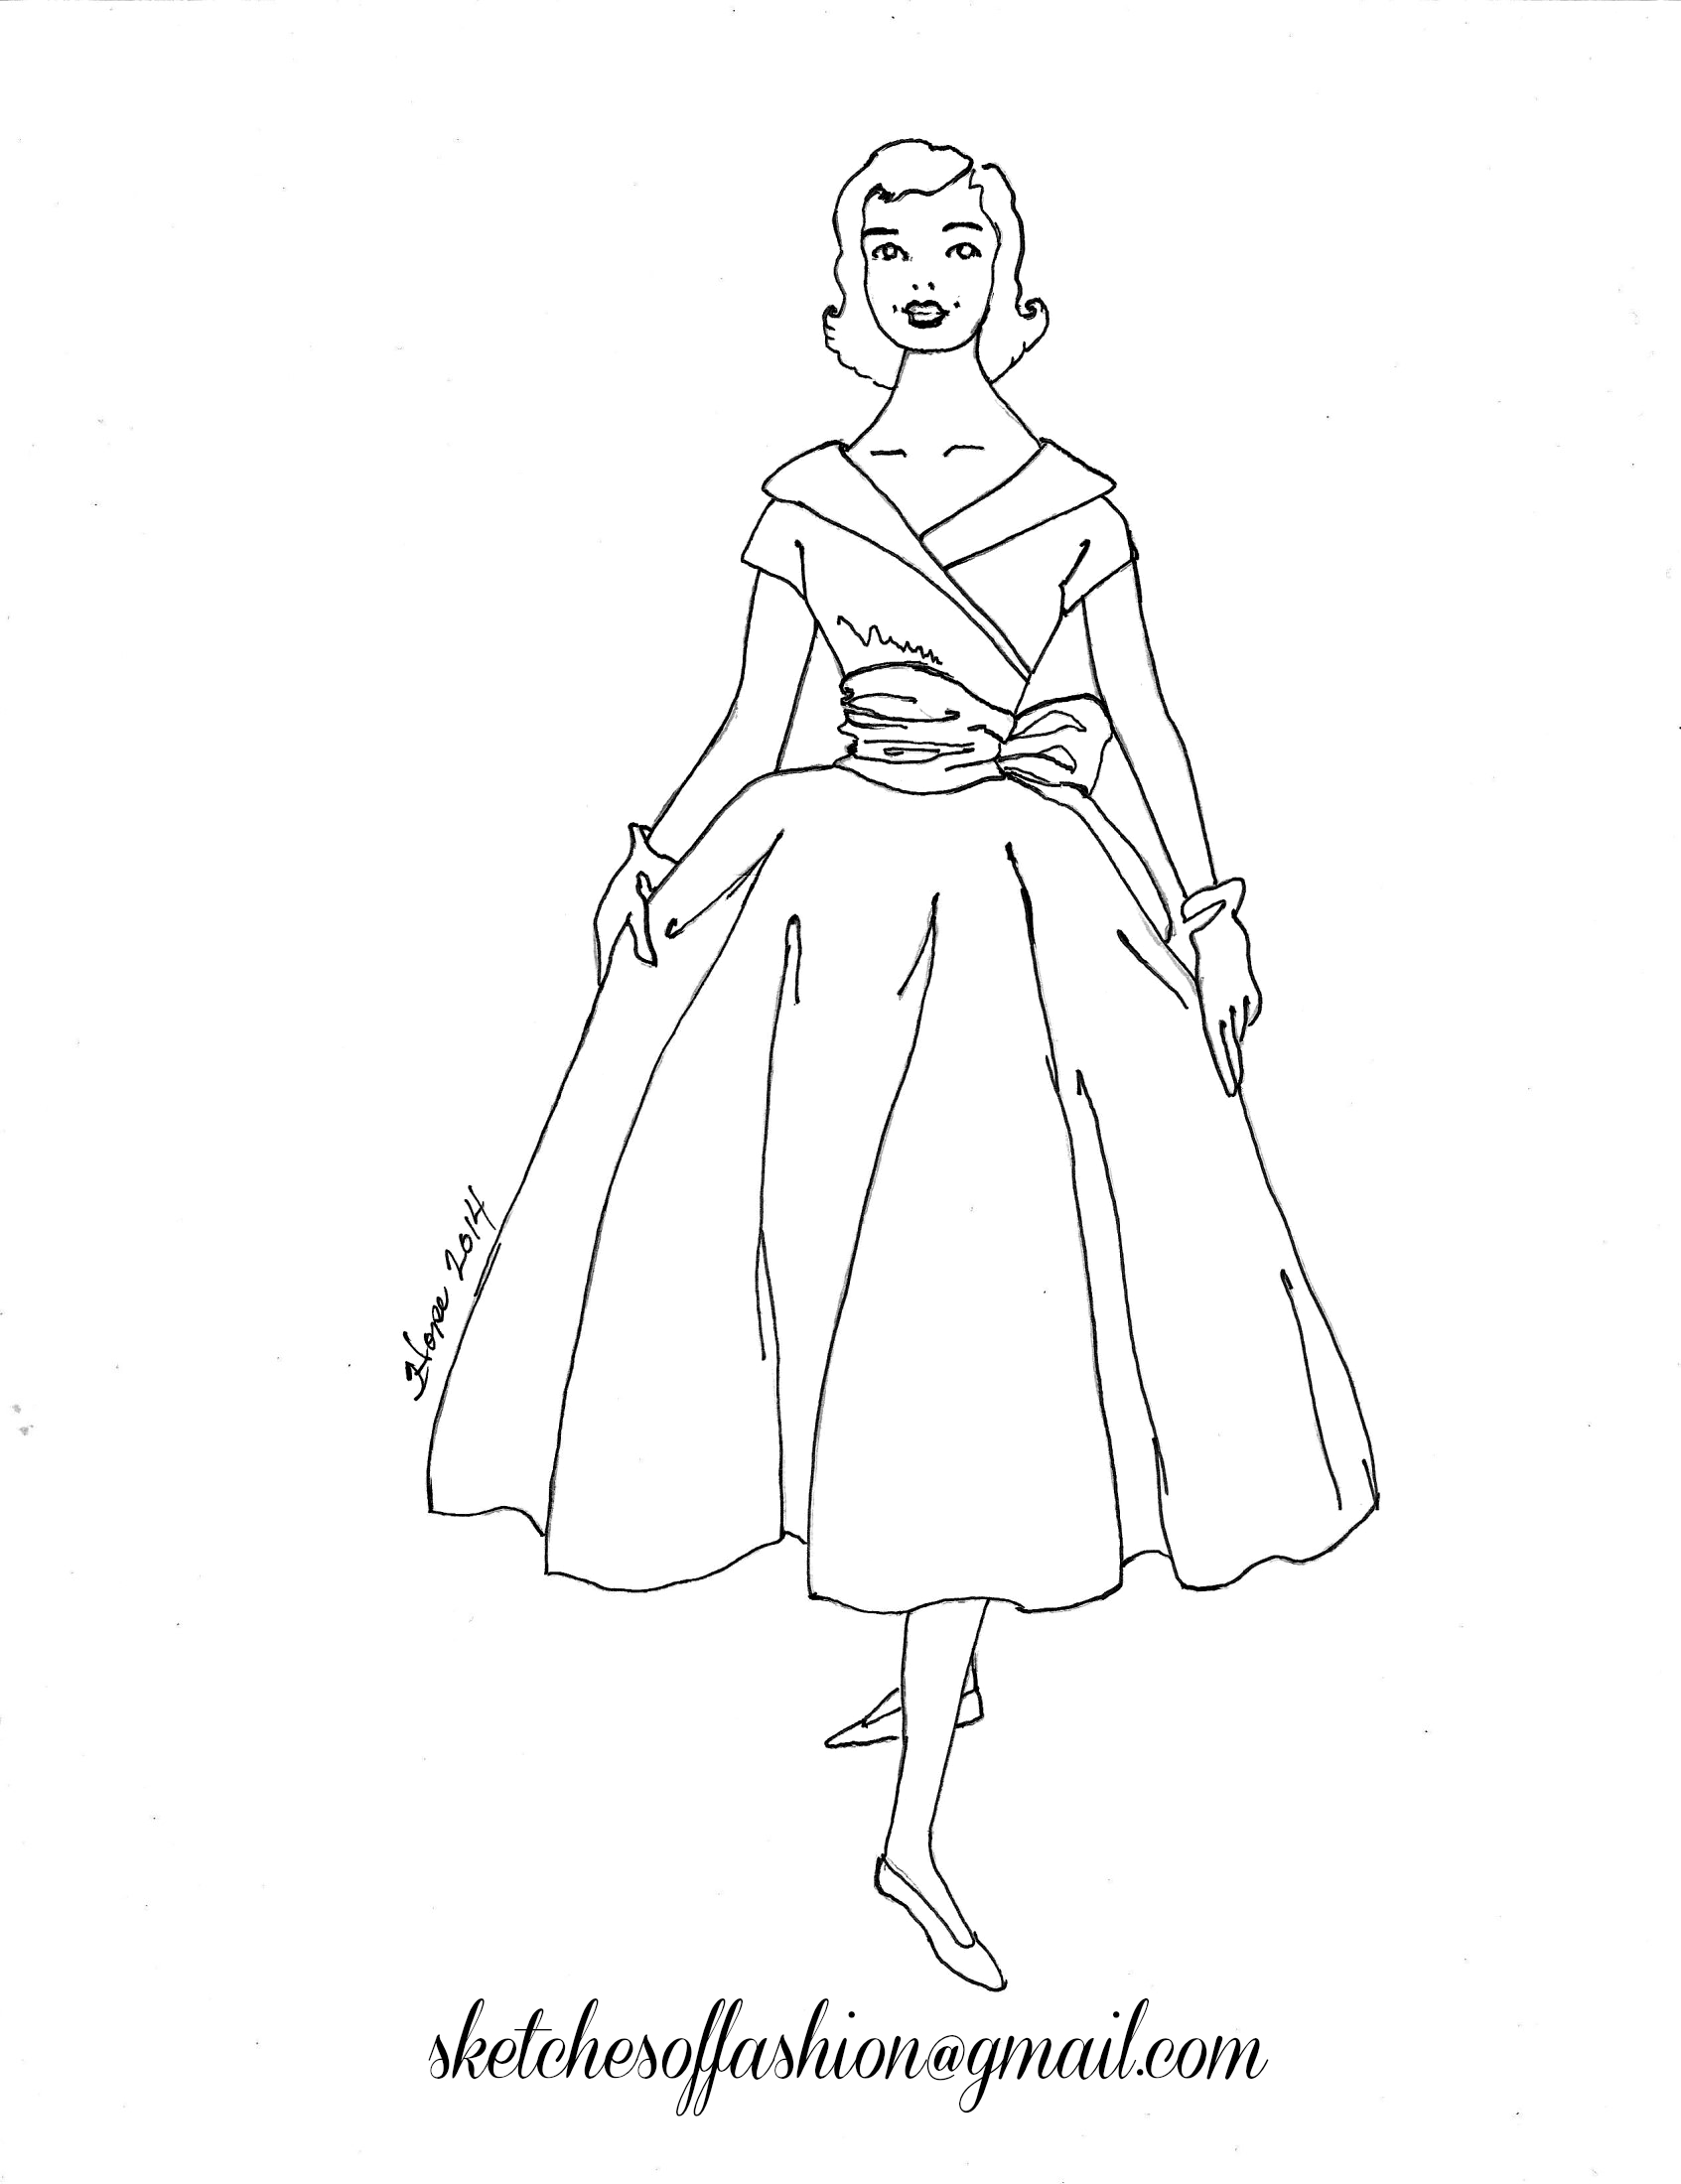 Fashion Design Coloring Pages Fashion Coloring Book Fashion Design Classes Colorful Fashion